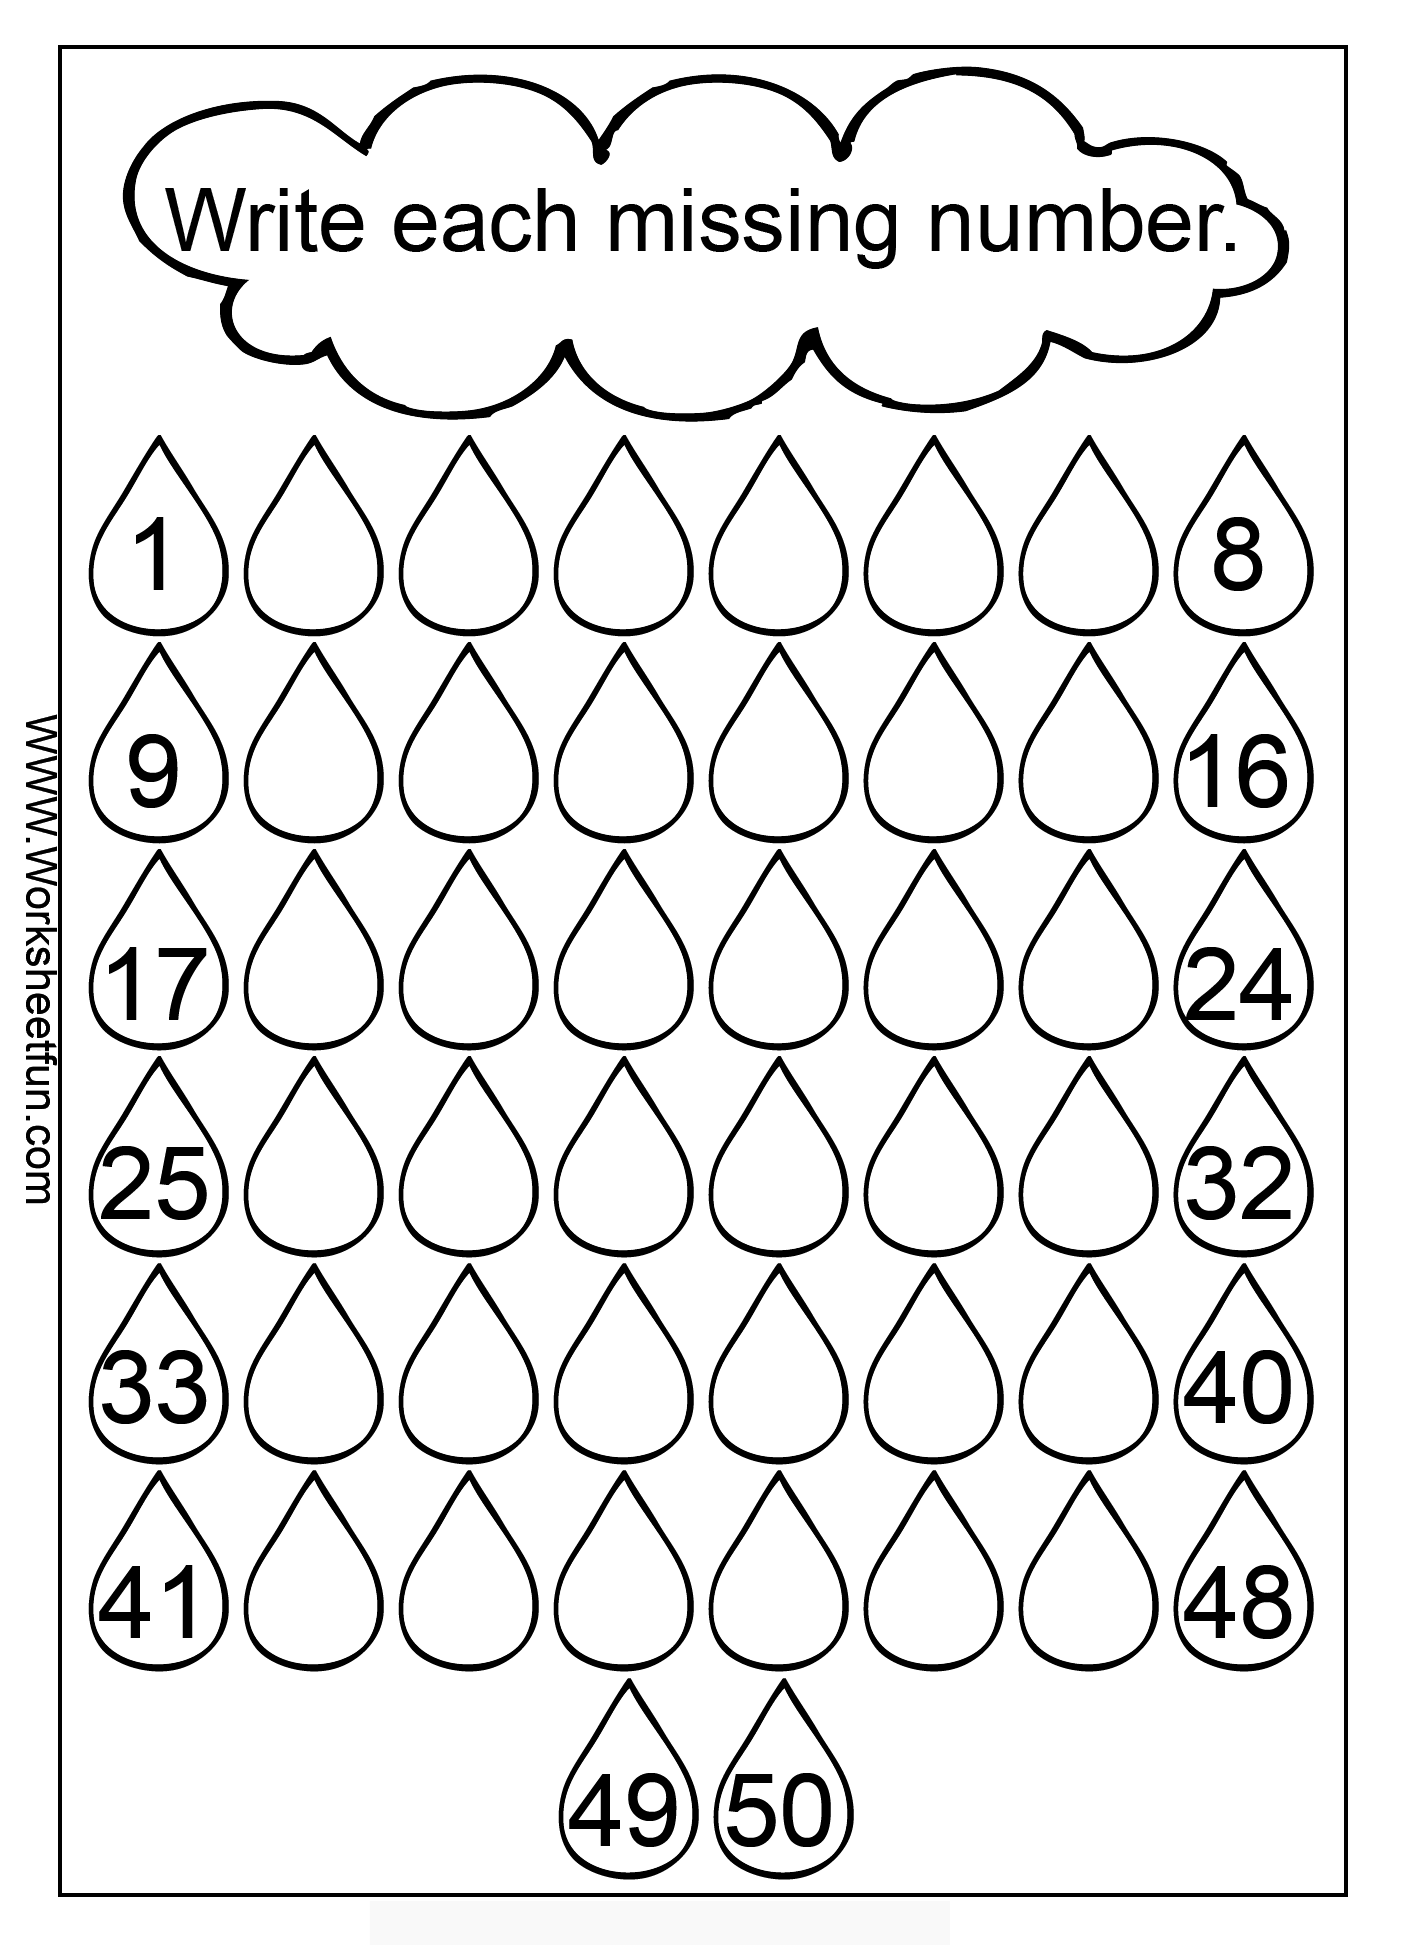 Cloud Rain Number Missing Numbers 1 50 3 Images